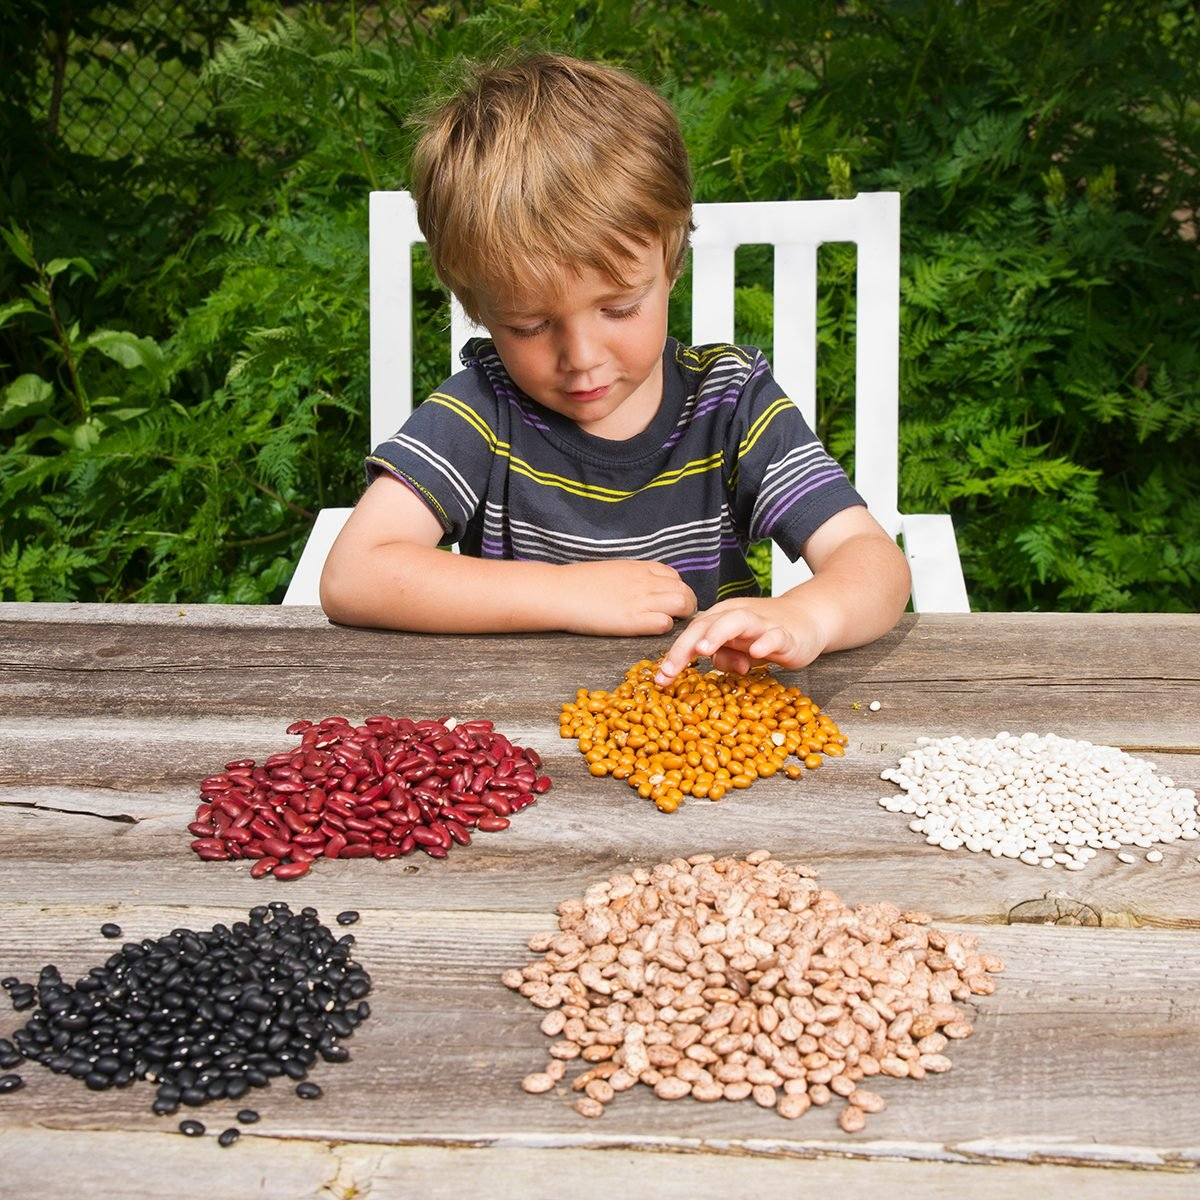 A little boy counting lots of beans.Please browse my: